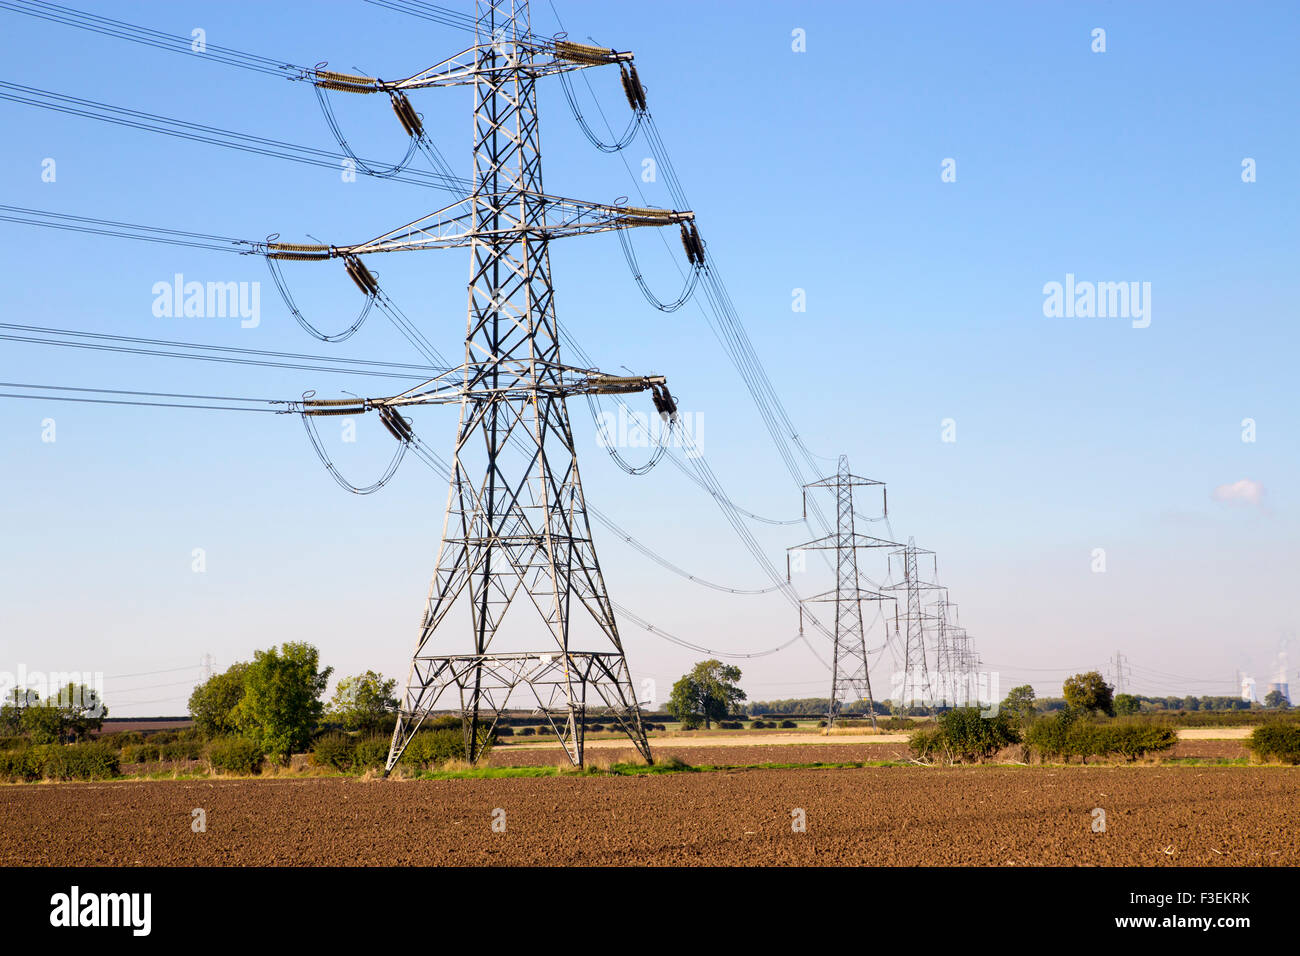 electricity pylons uk stockfotos electricity pylons uk. Black Bedroom Furniture Sets. Home Design Ideas